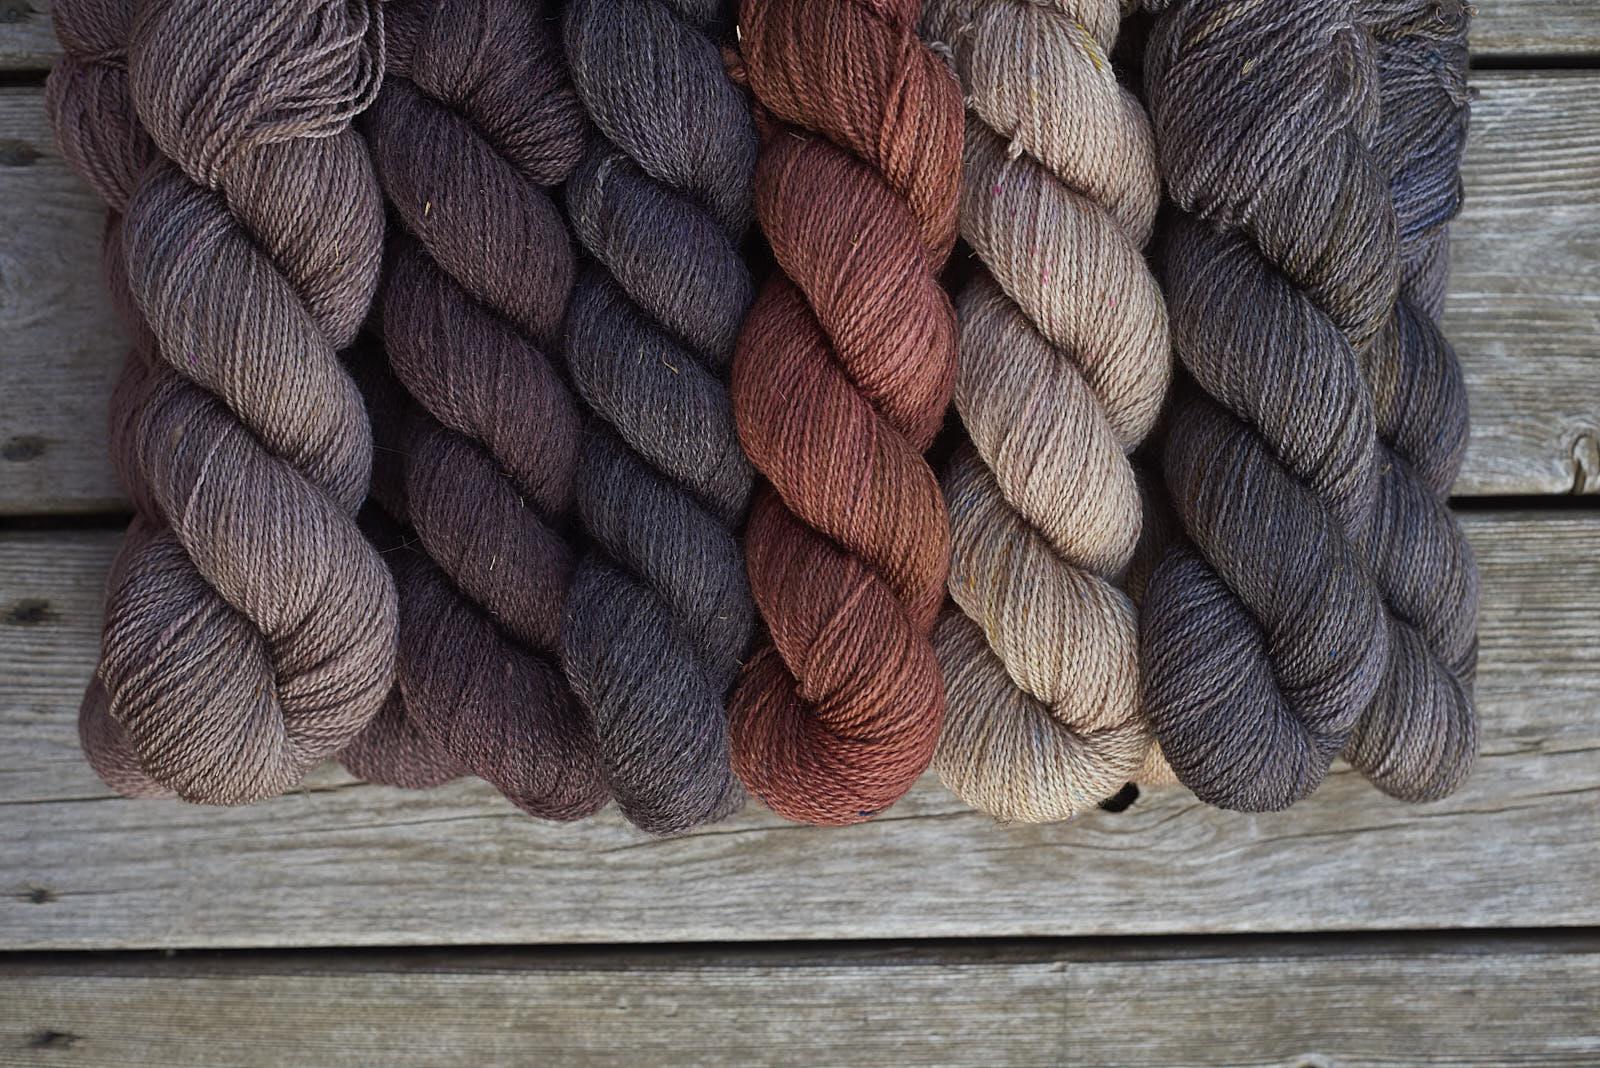 Persephone dyed over white and dark grey natural colours.